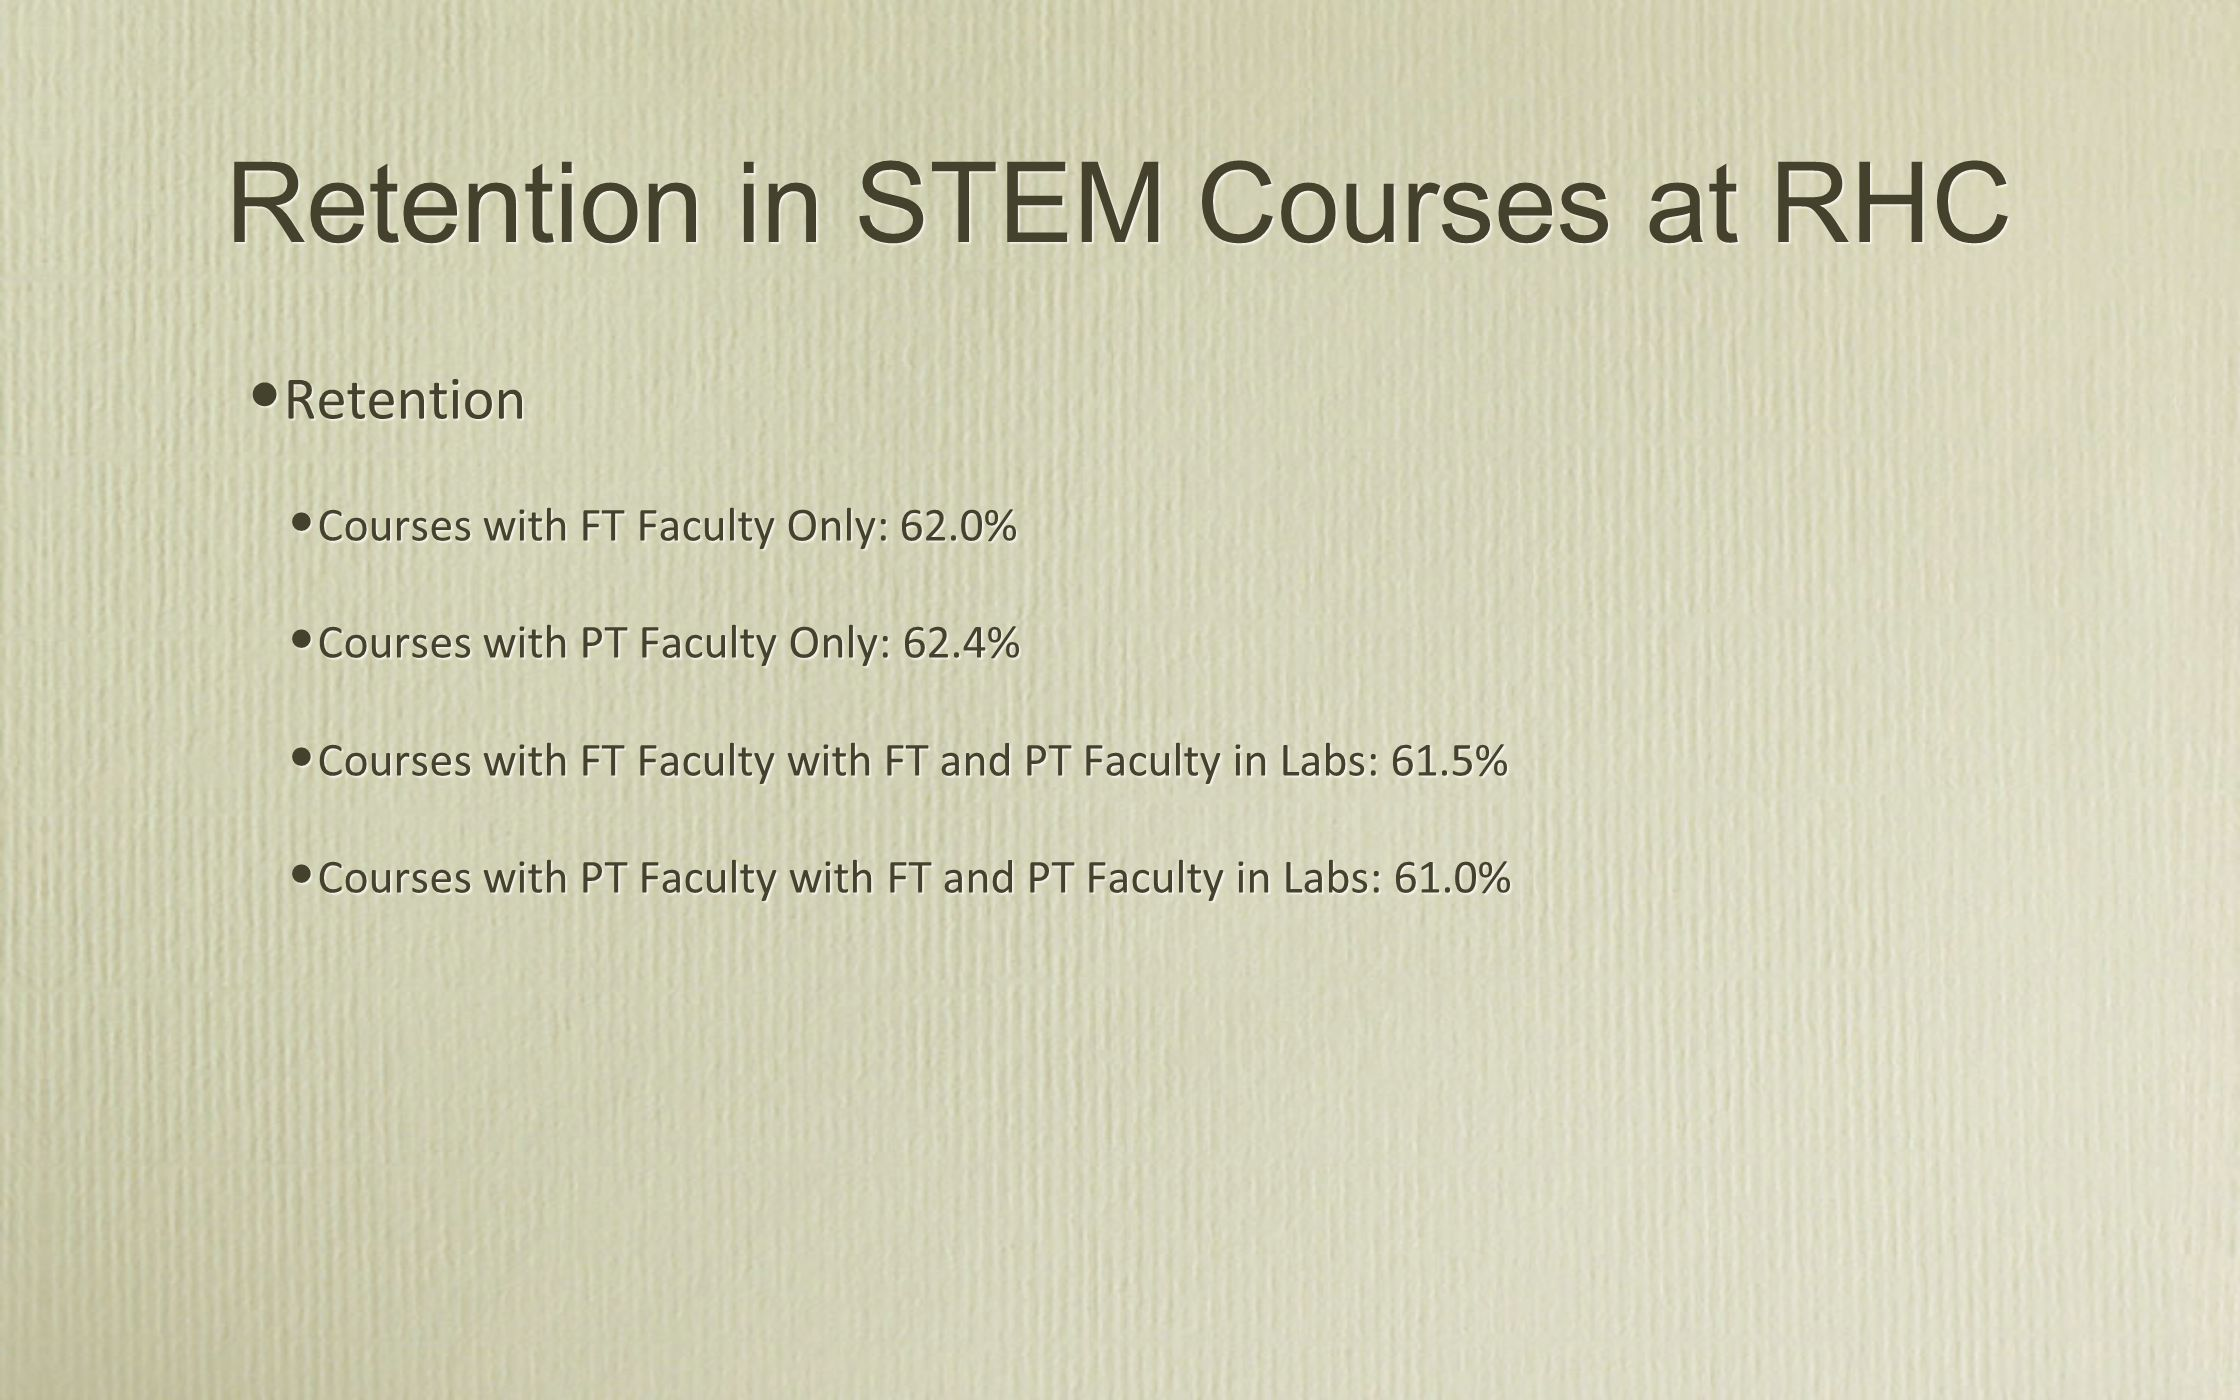 Retention in STEM Courses at RHC Retention Courses with FT Faculty Only: 62.0% Courses with PT Faculty Only: 62.4% Courses with FT Faculty with FT and PT Faculty in Labs: 61.5% Courses with PT Faculty with FT and PT Faculty in Labs: 61.0% Retention Courses with FT Faculty Only: 62.0% Courses with PT Faculty Only: 62.4% Courses with FT Faculty with FT and PT Faculty in Labs: 61.5% Courses with PT Faculty with FT and PT Faculty in Labs: 61.0%